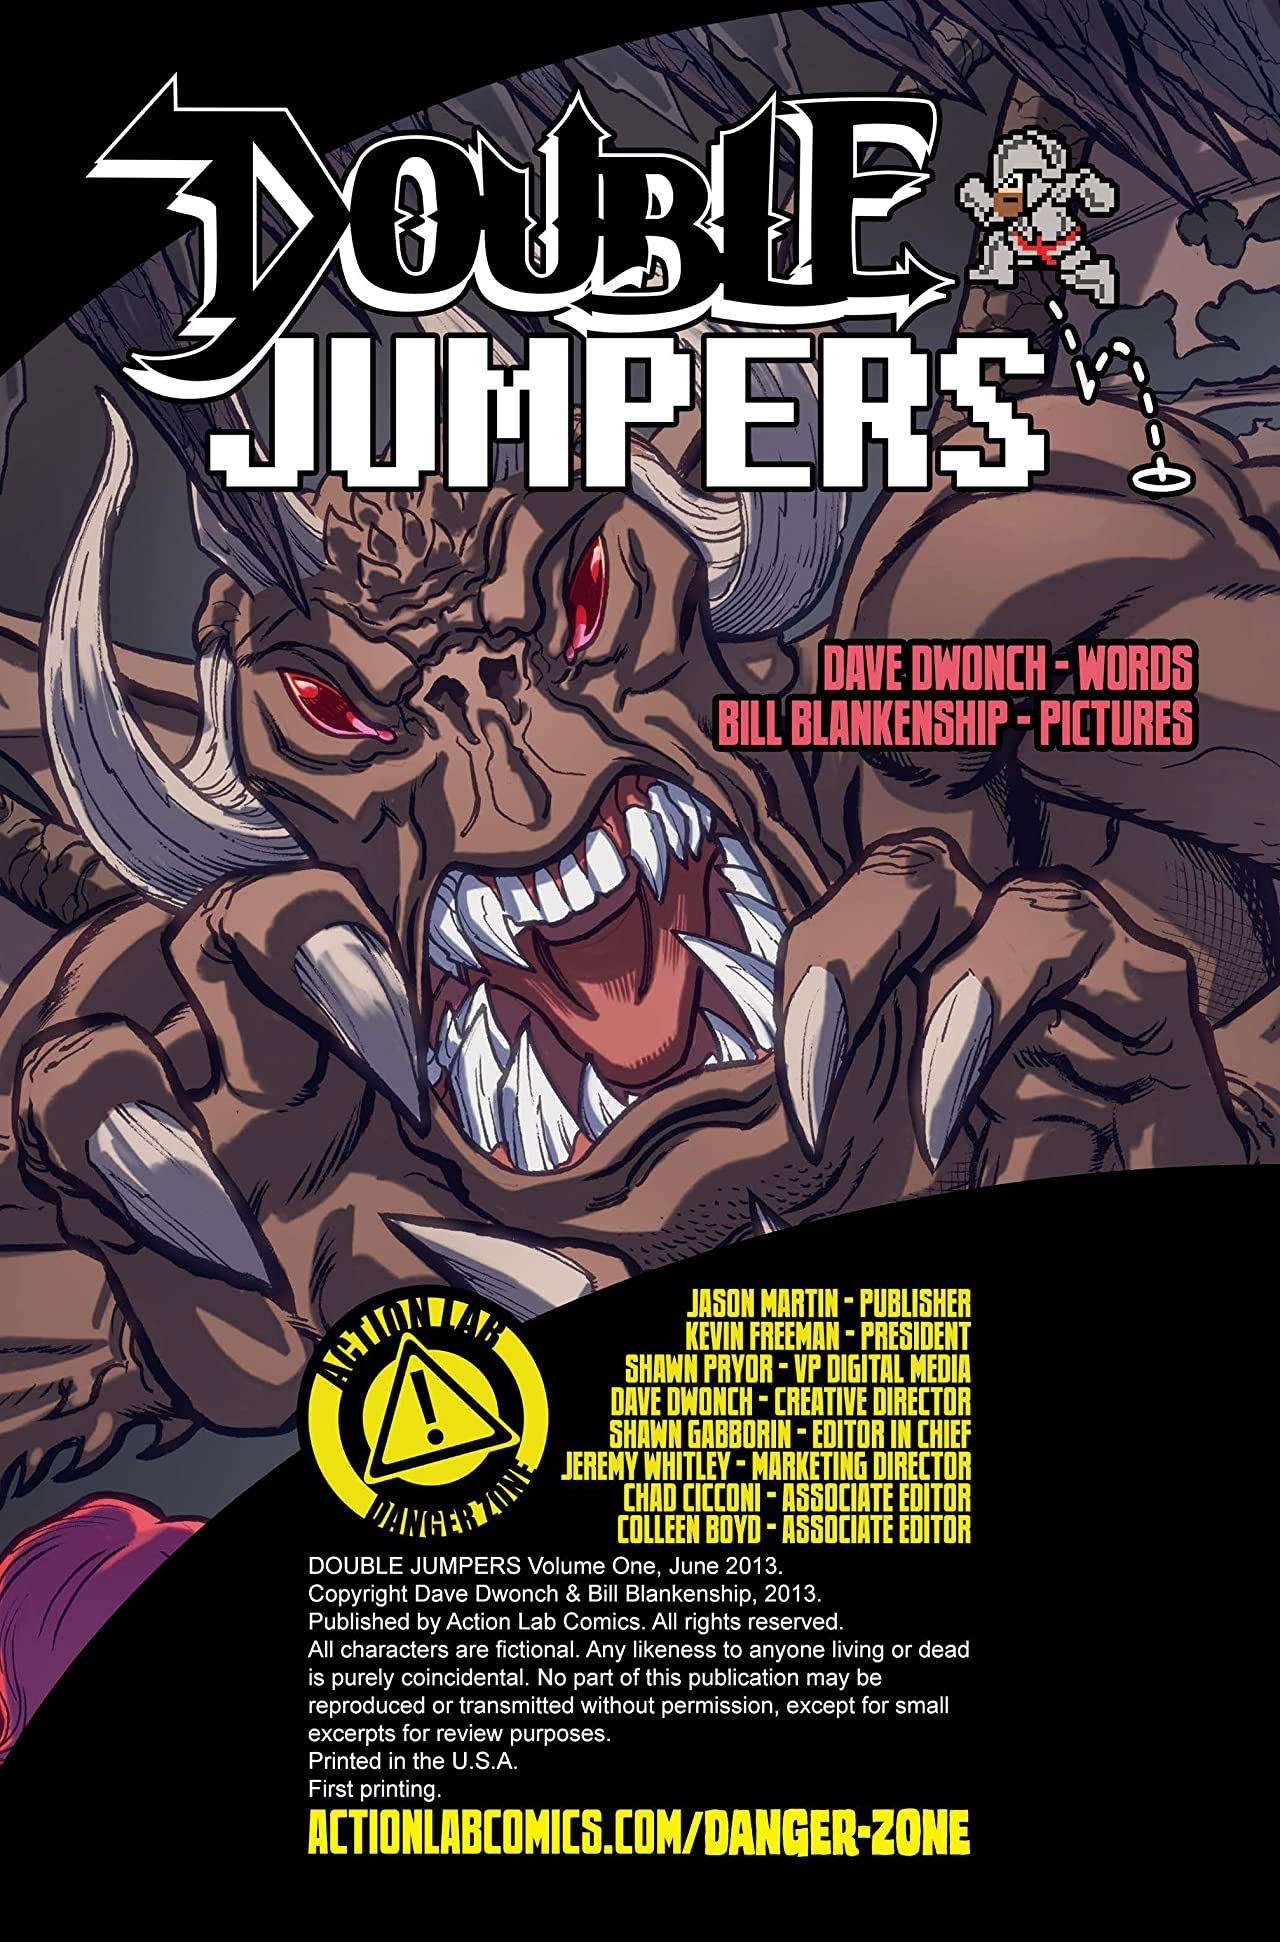 Double Jumpers Vol. 1